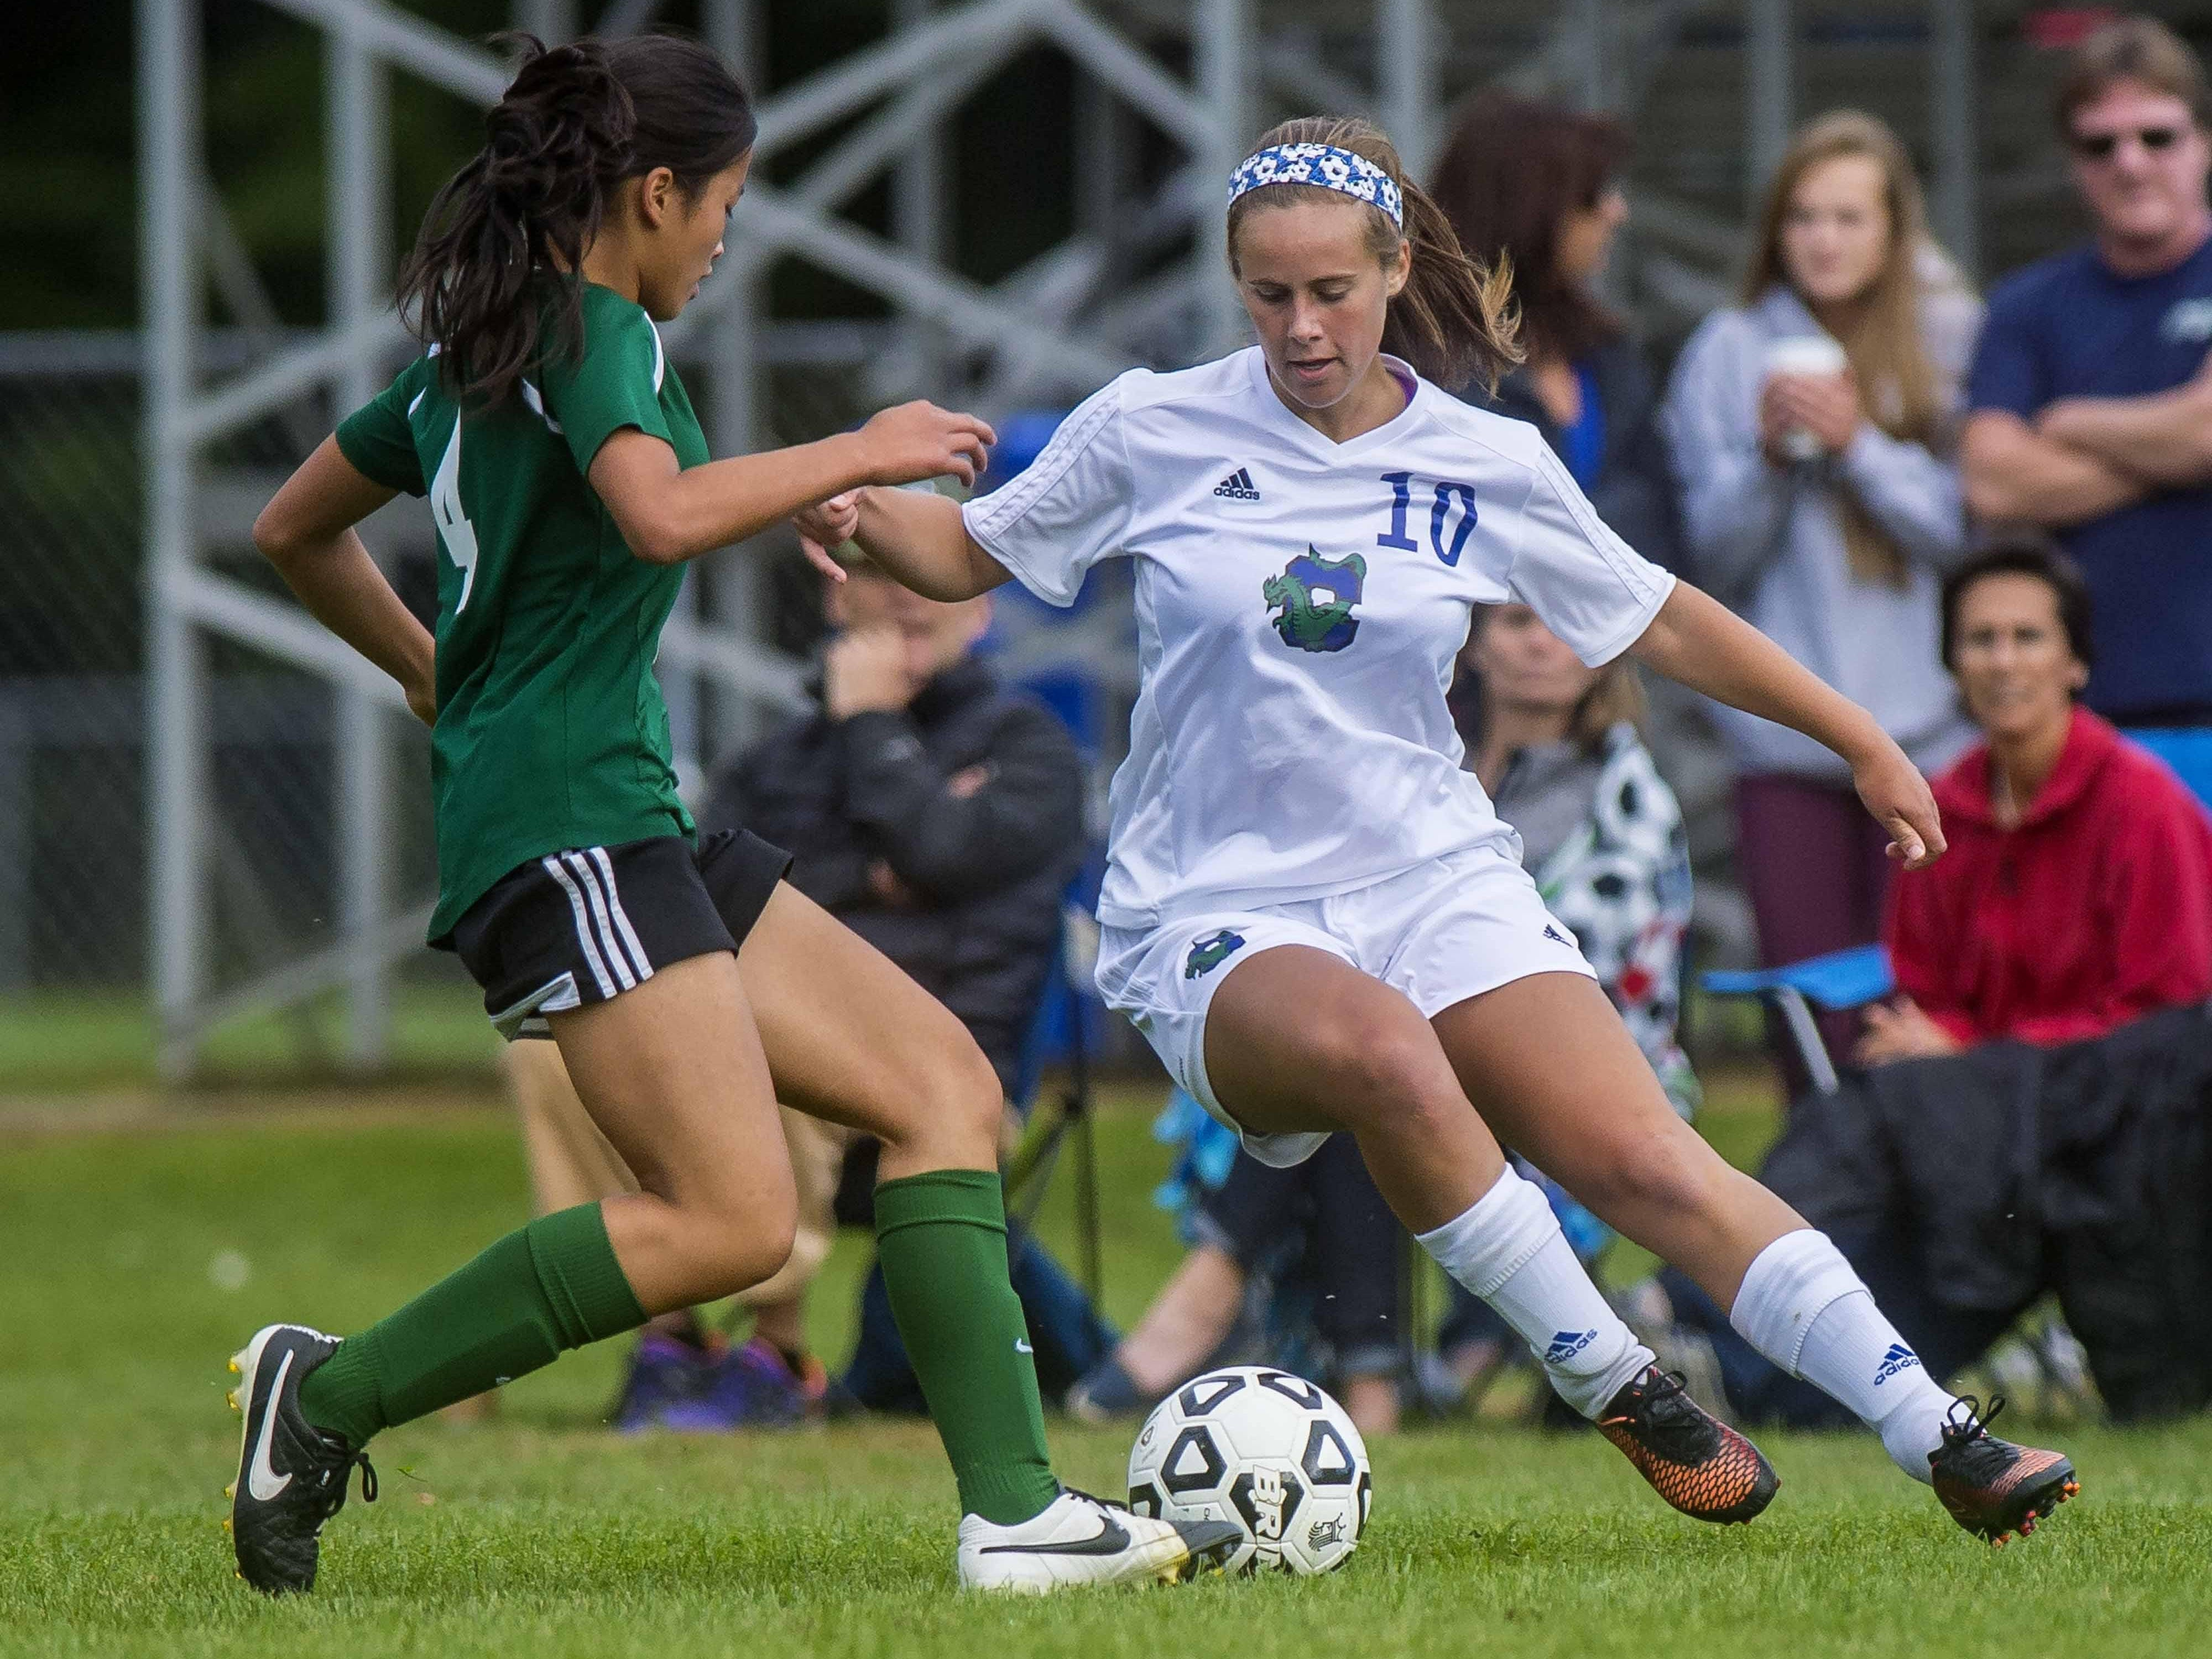 Colchester's Katie White, right, tries to get the ball past St. Johnsbury's Jen Rotti in Colchester on Friday, September 25, 2015.